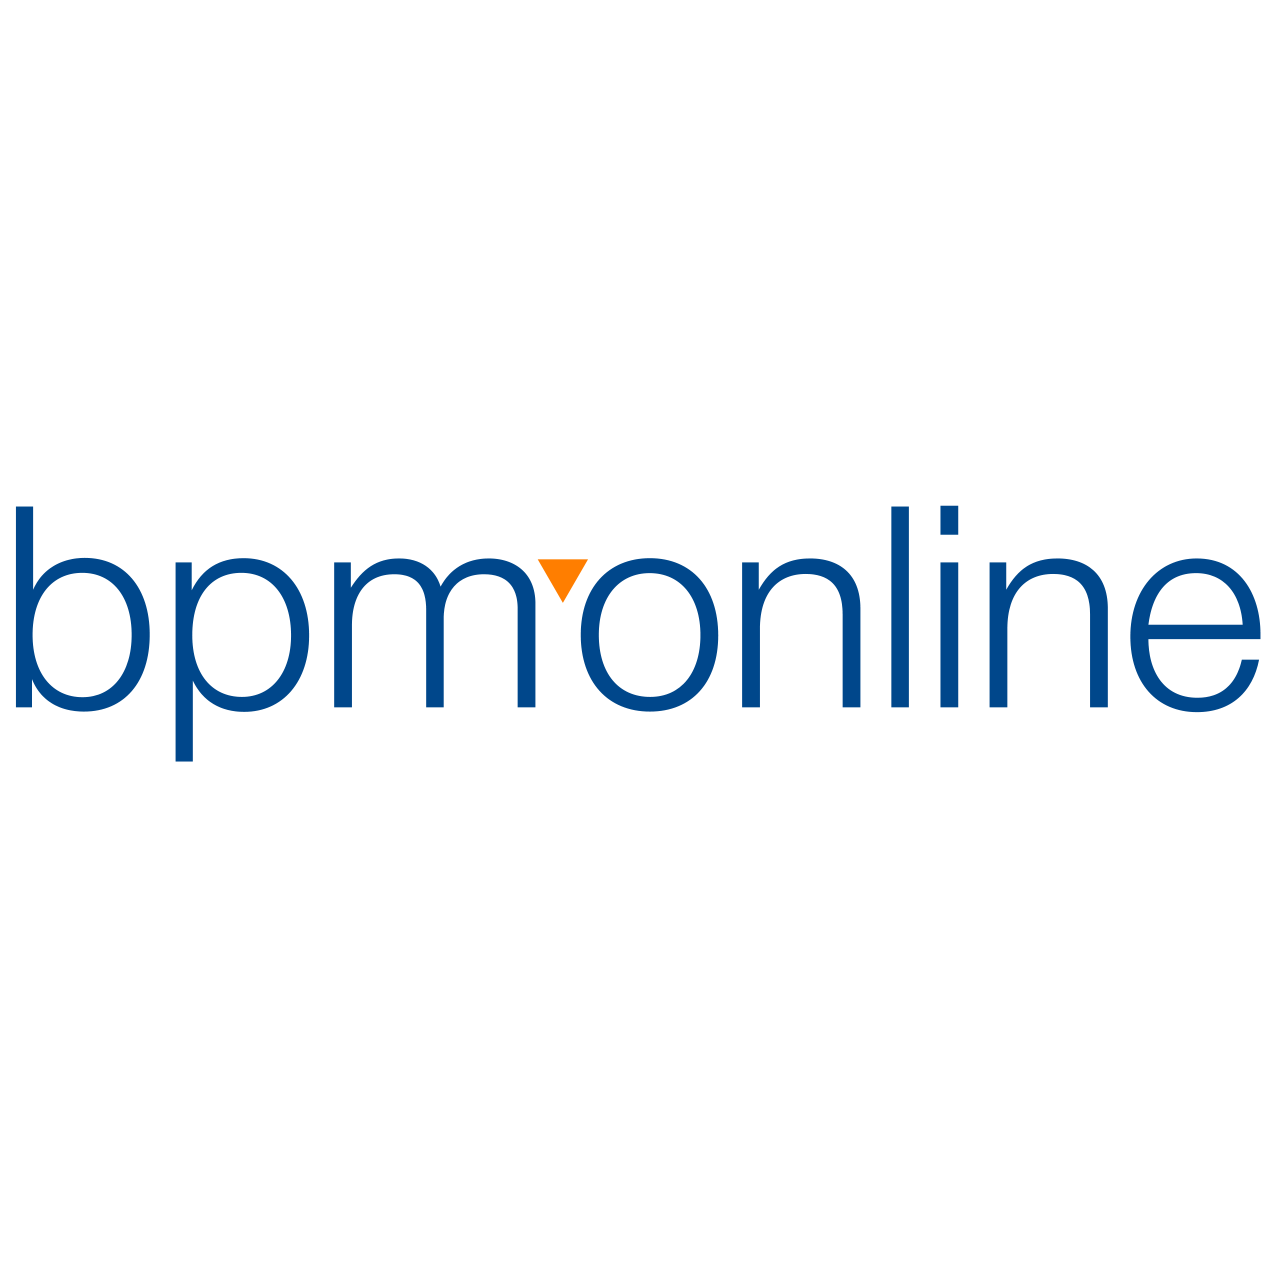 Bpmonline Connector